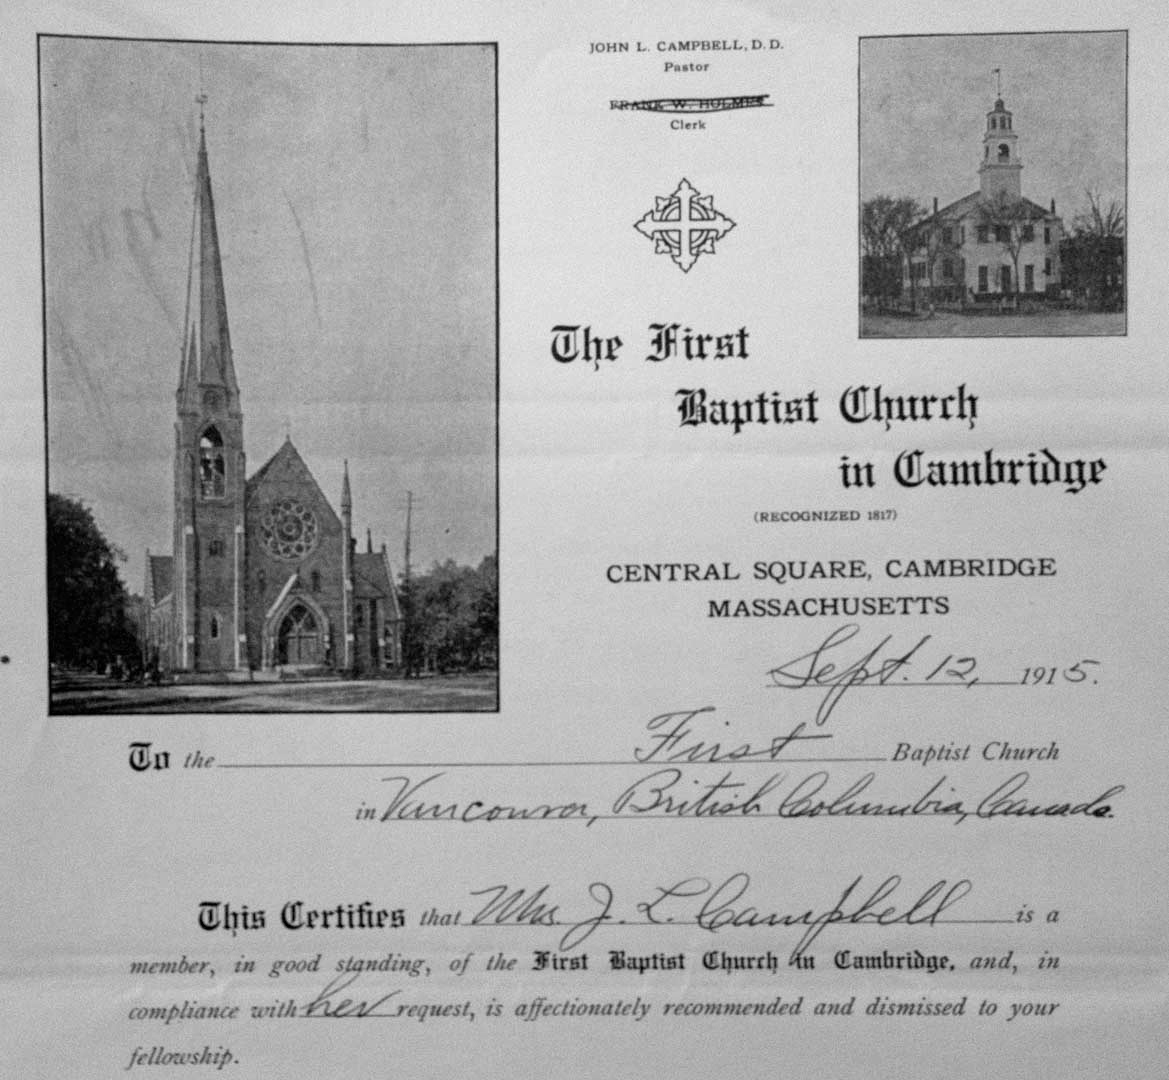 Church membership transfers vancouver as it was a photo e membership transfer form completed by the clerk probably a clerk pro tem since the name of the clerk was scratched out on this form at fbc cambridge altavistaventures Choice Image